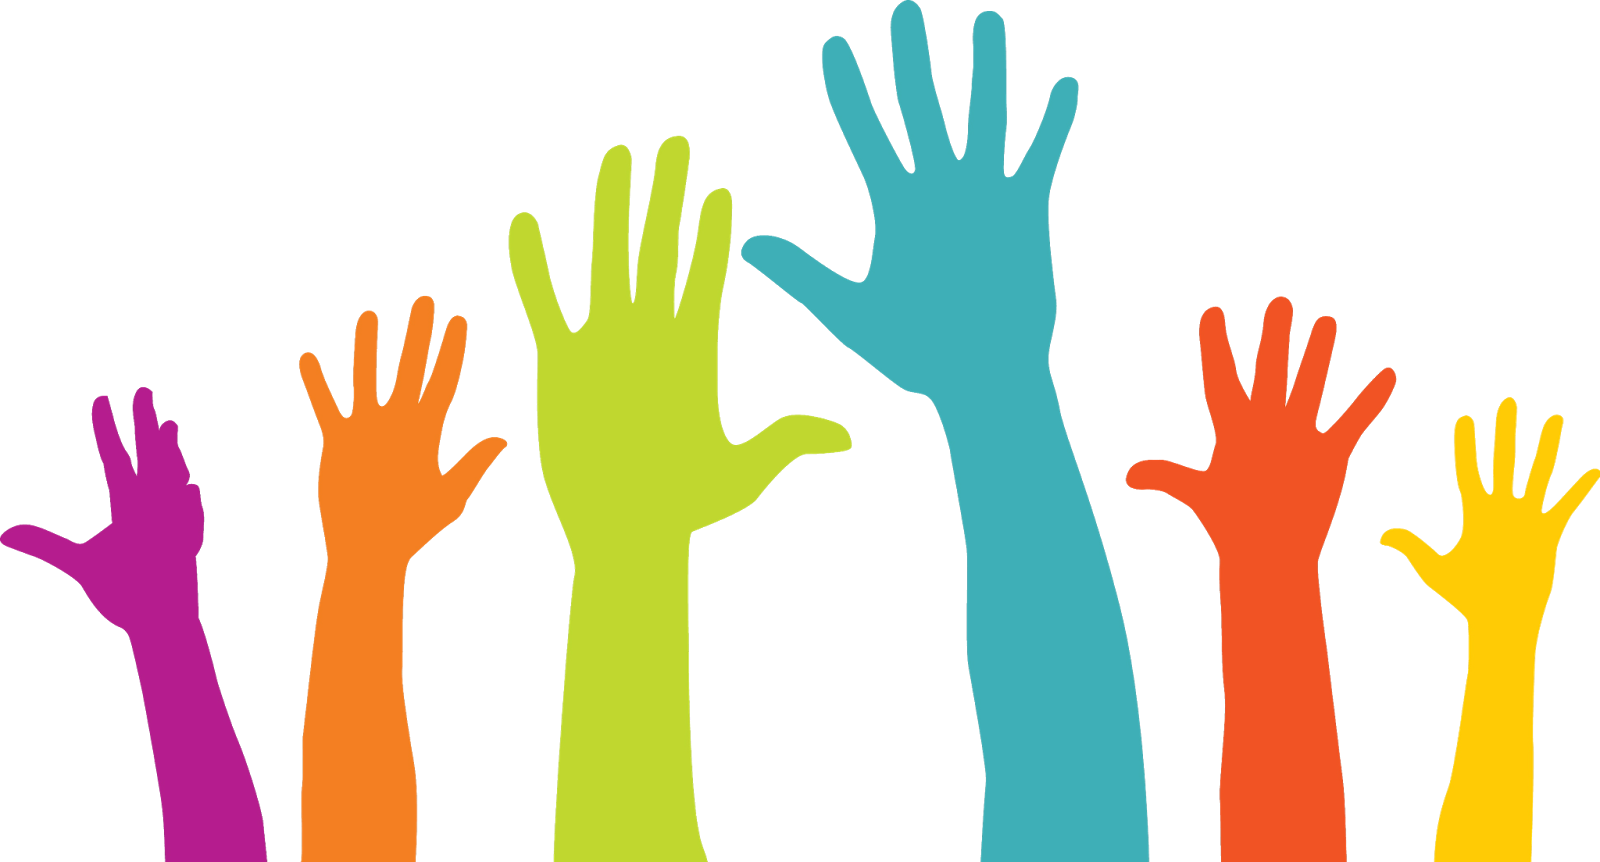 multi-colored hands reaching up